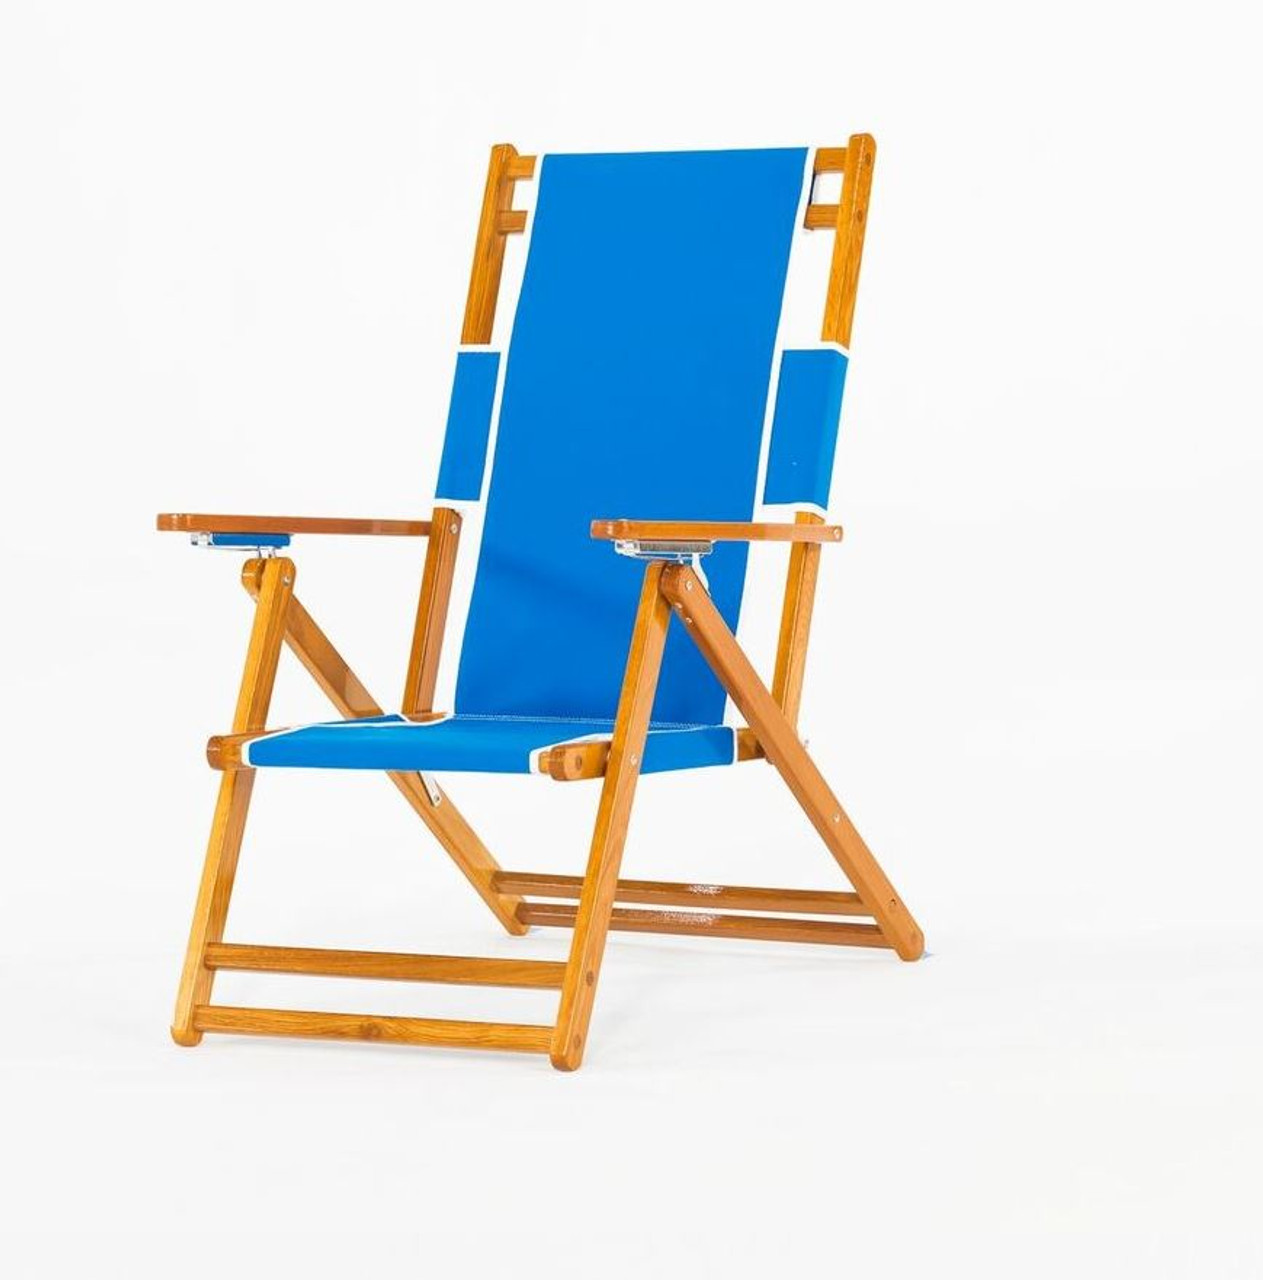 Folding Wood Beach Chair Commercial Wooden Beach Chair No Foot Rest